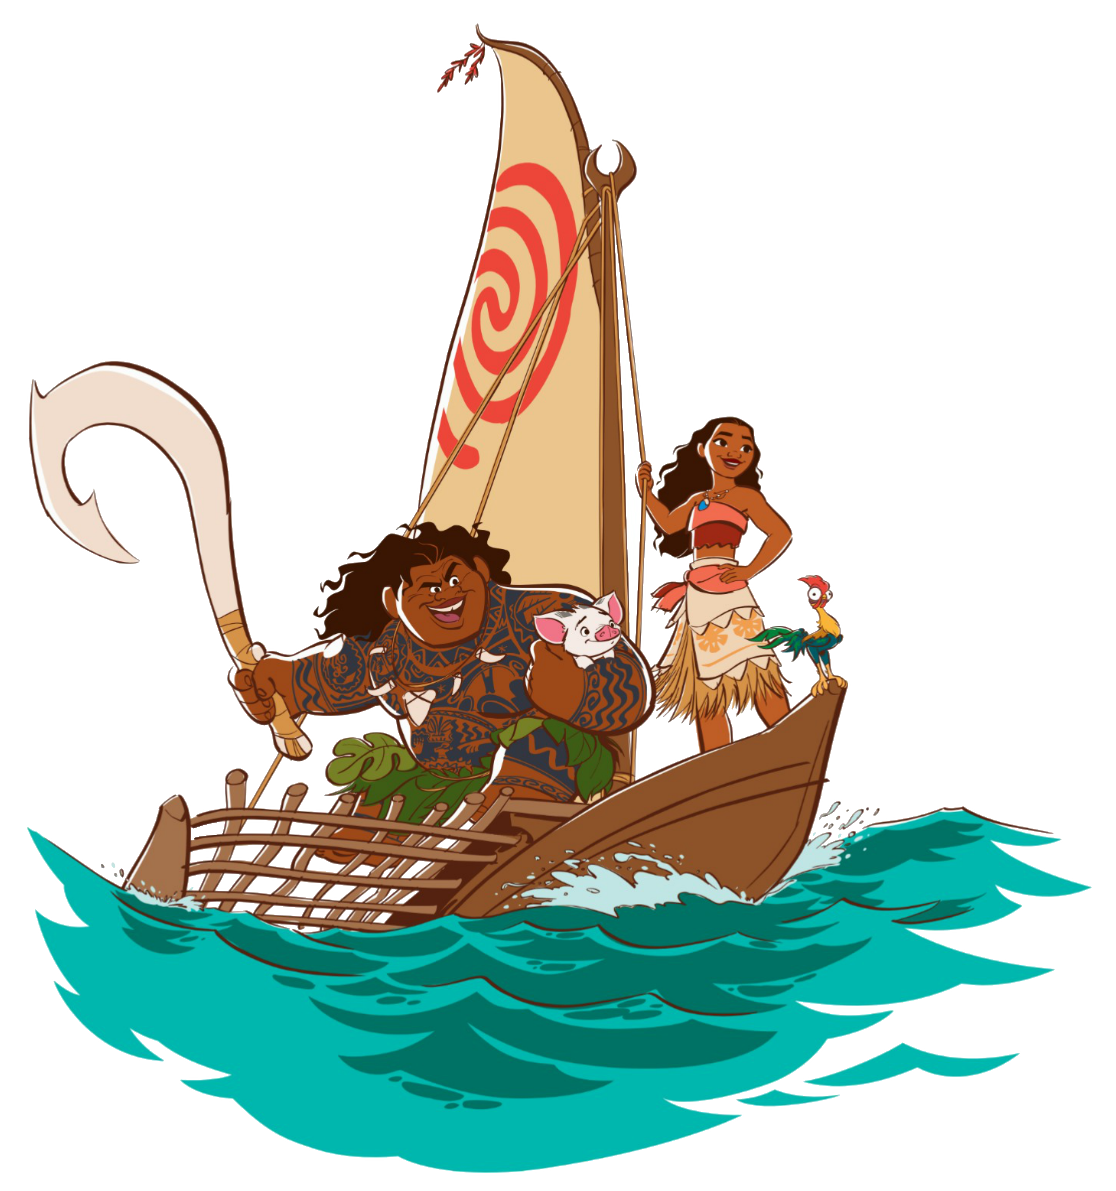 image moana s team png disney wiki fandom powered by sleeping baby clipart free sleeping baby clipart free